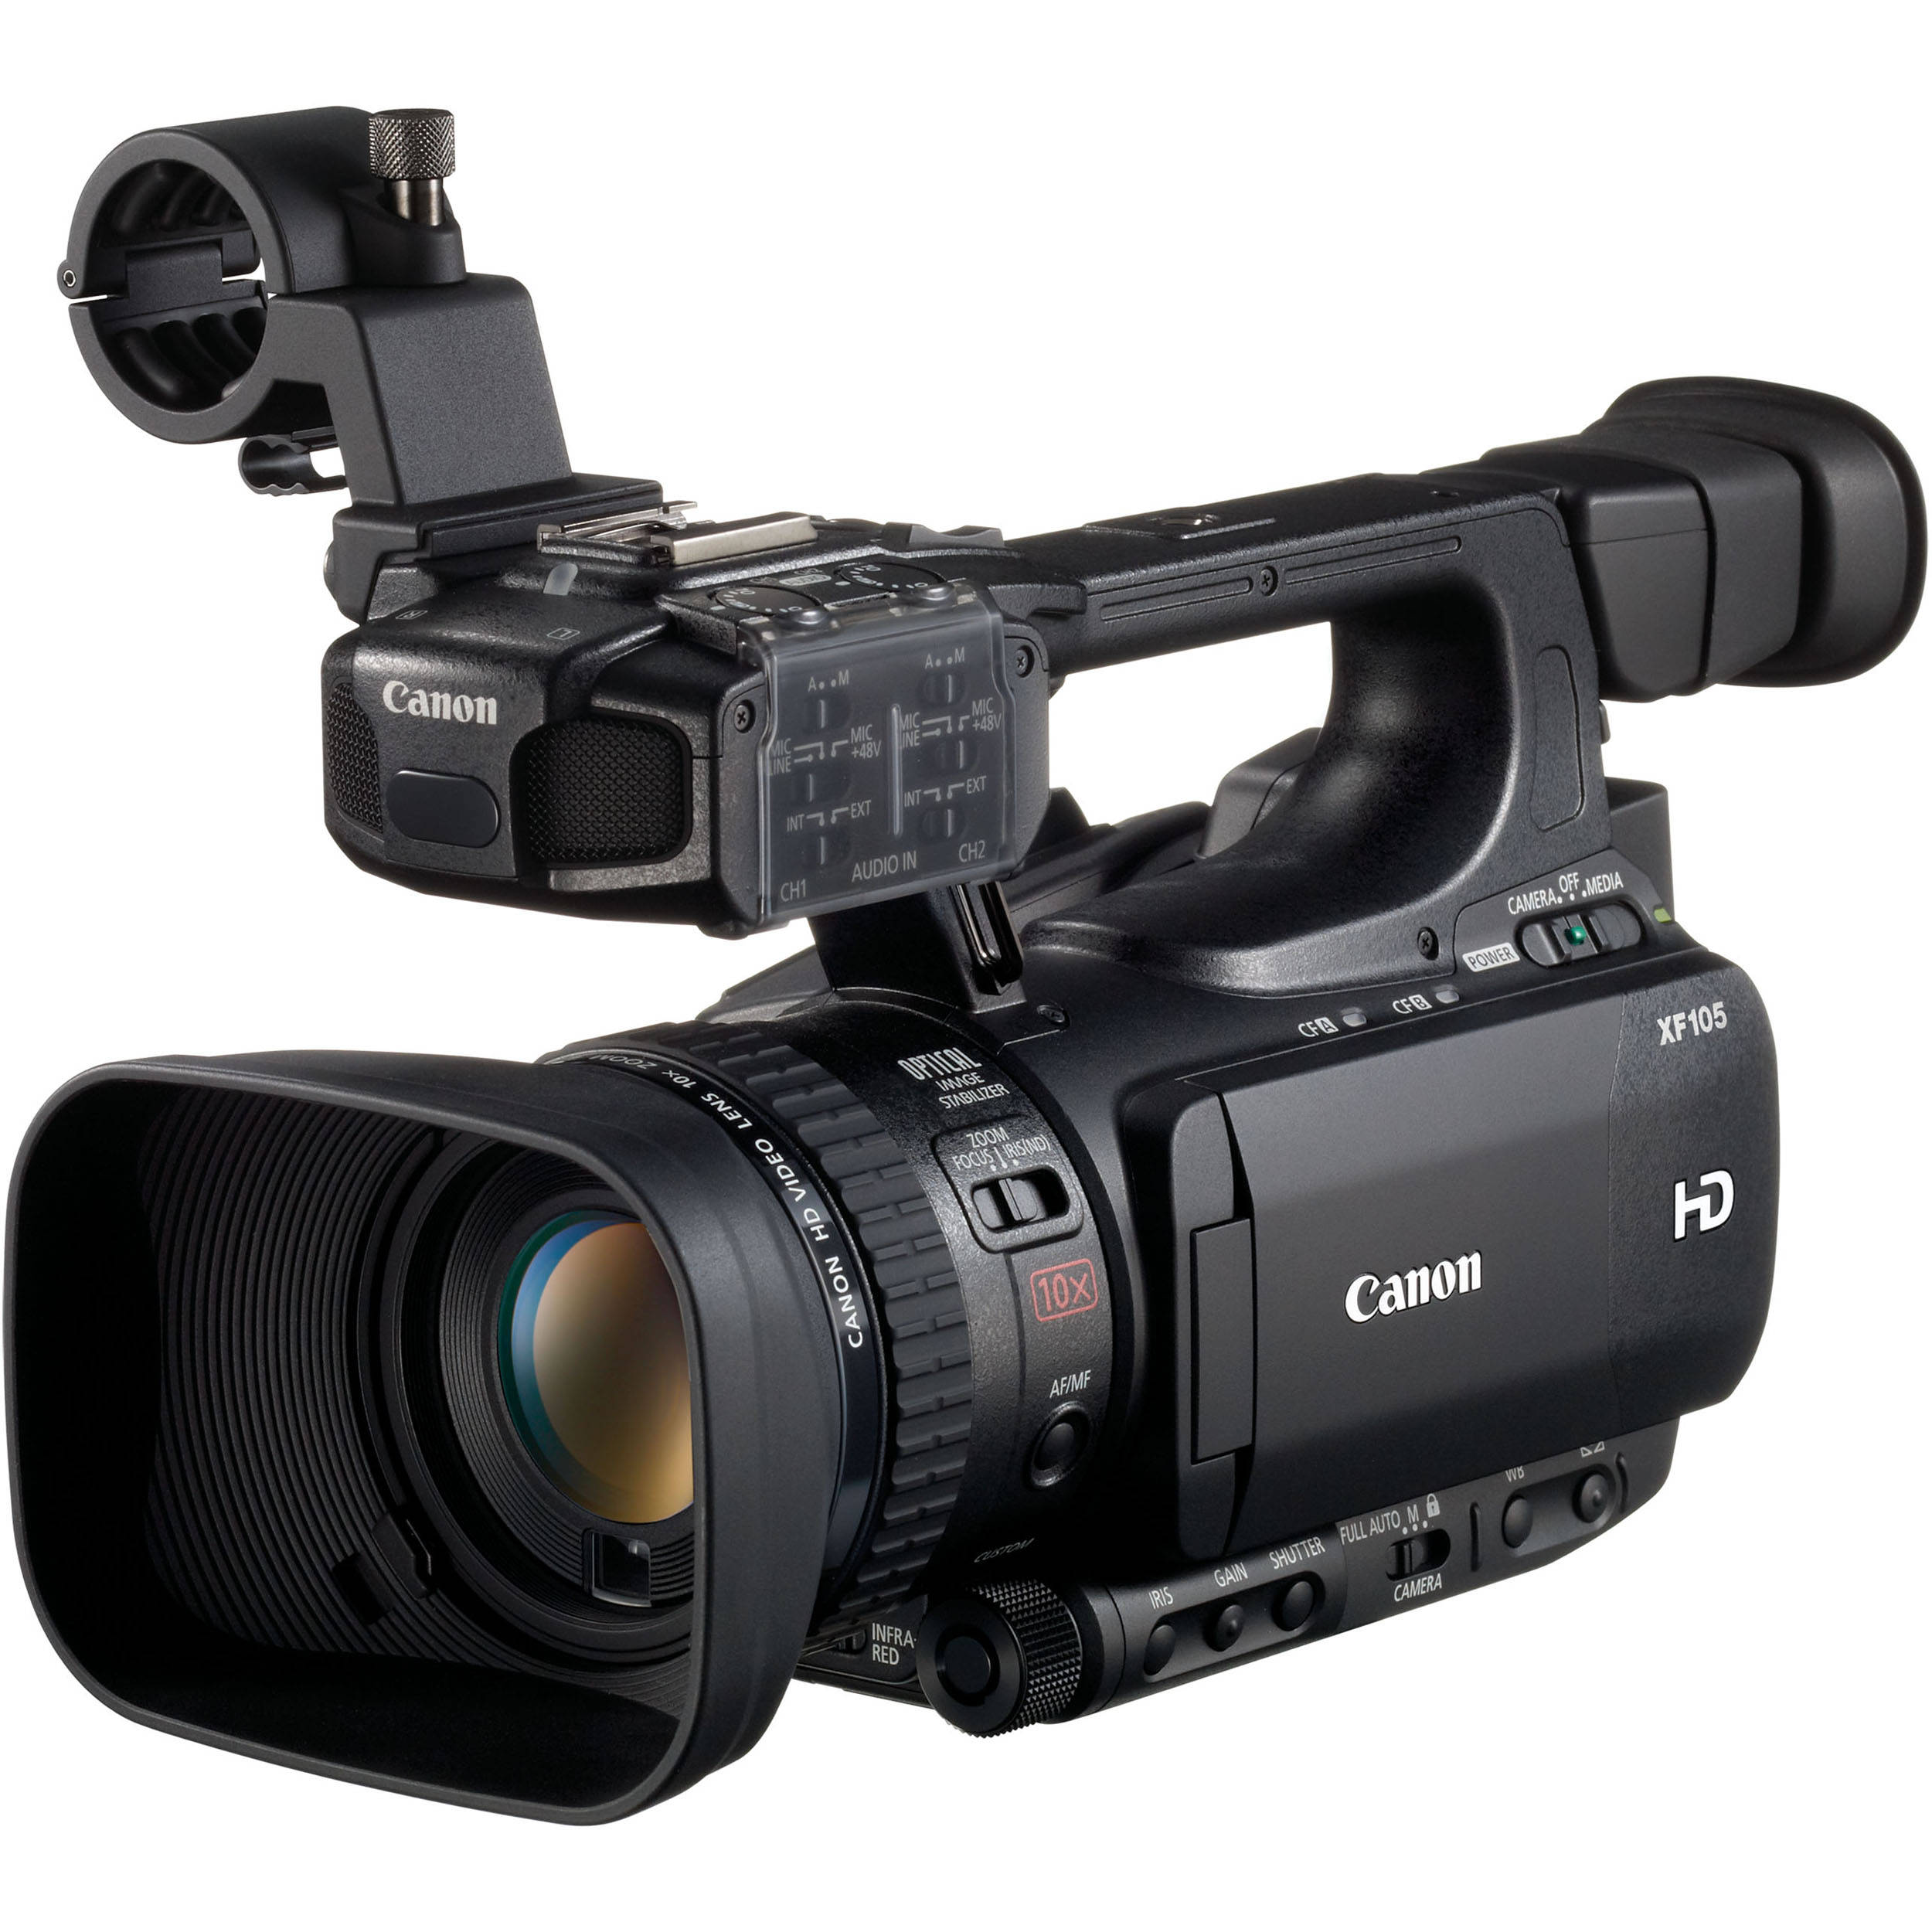 $2000 for a Canon XF 105